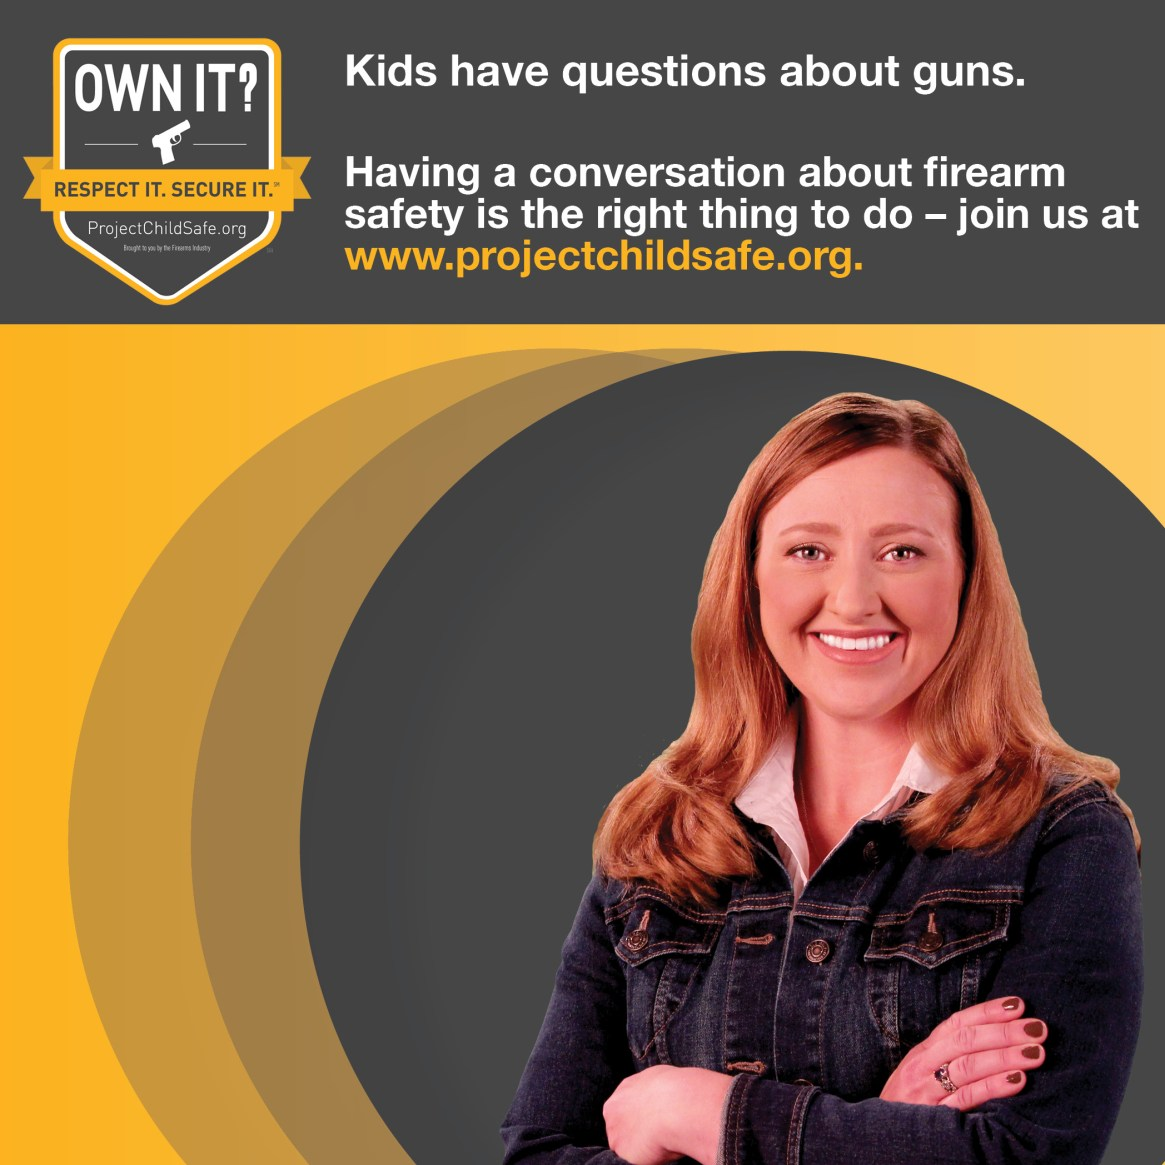 Learn more about Project ChildSafe